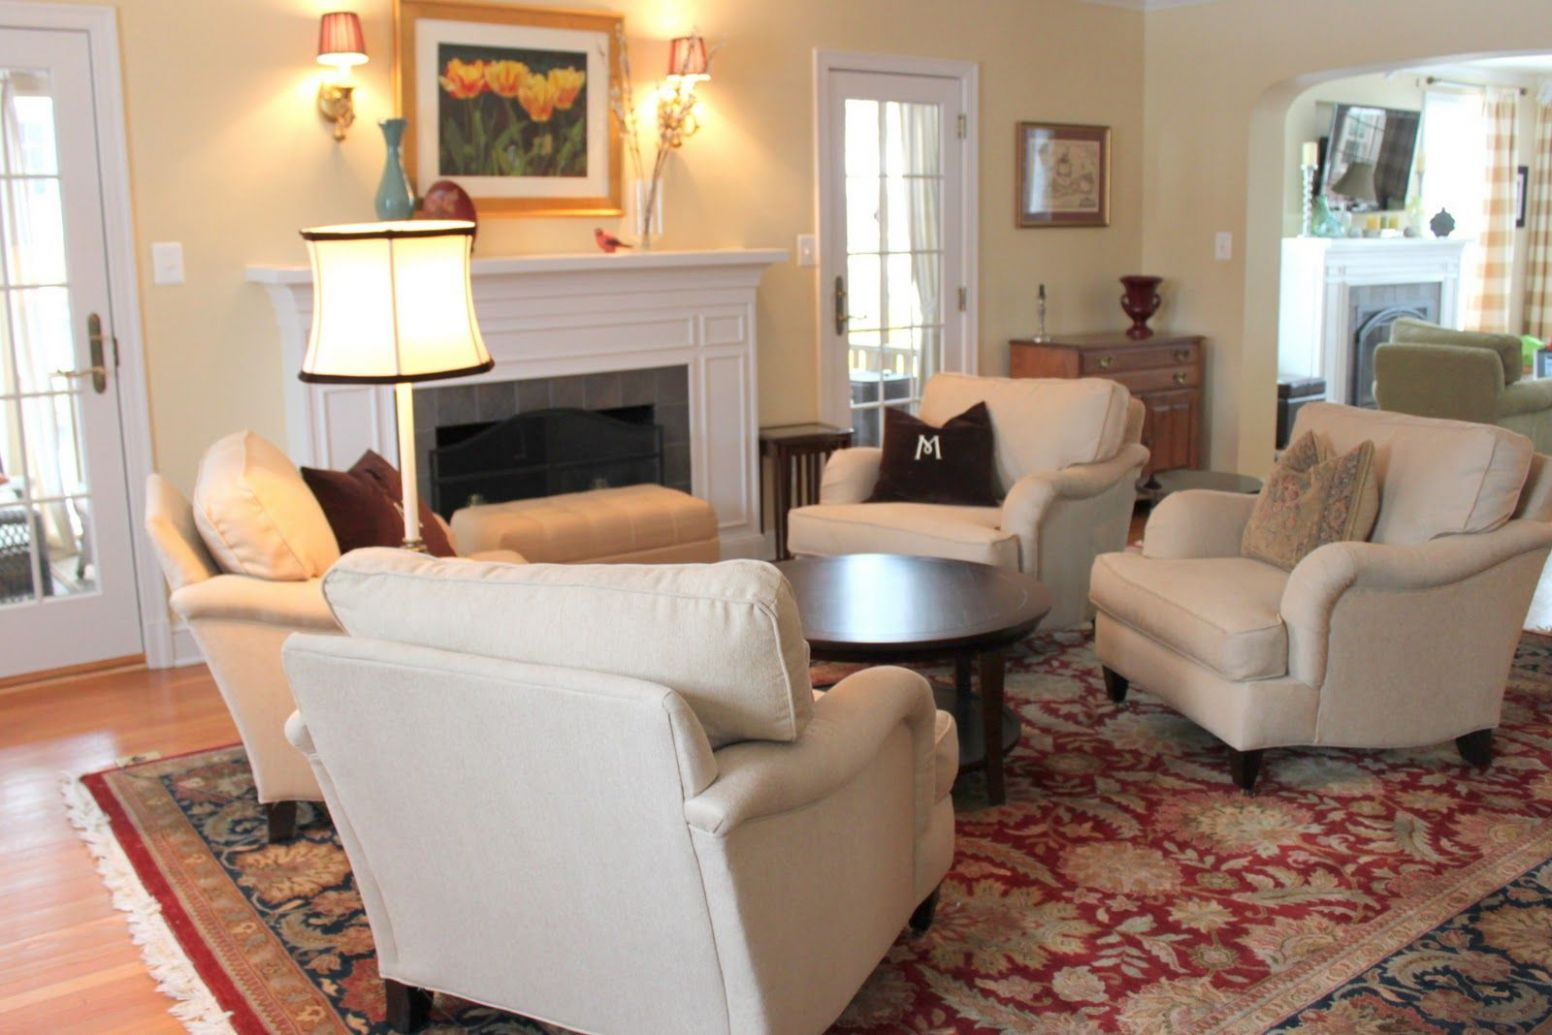 living room with just comfy chairs, no sofa | Living room without ...